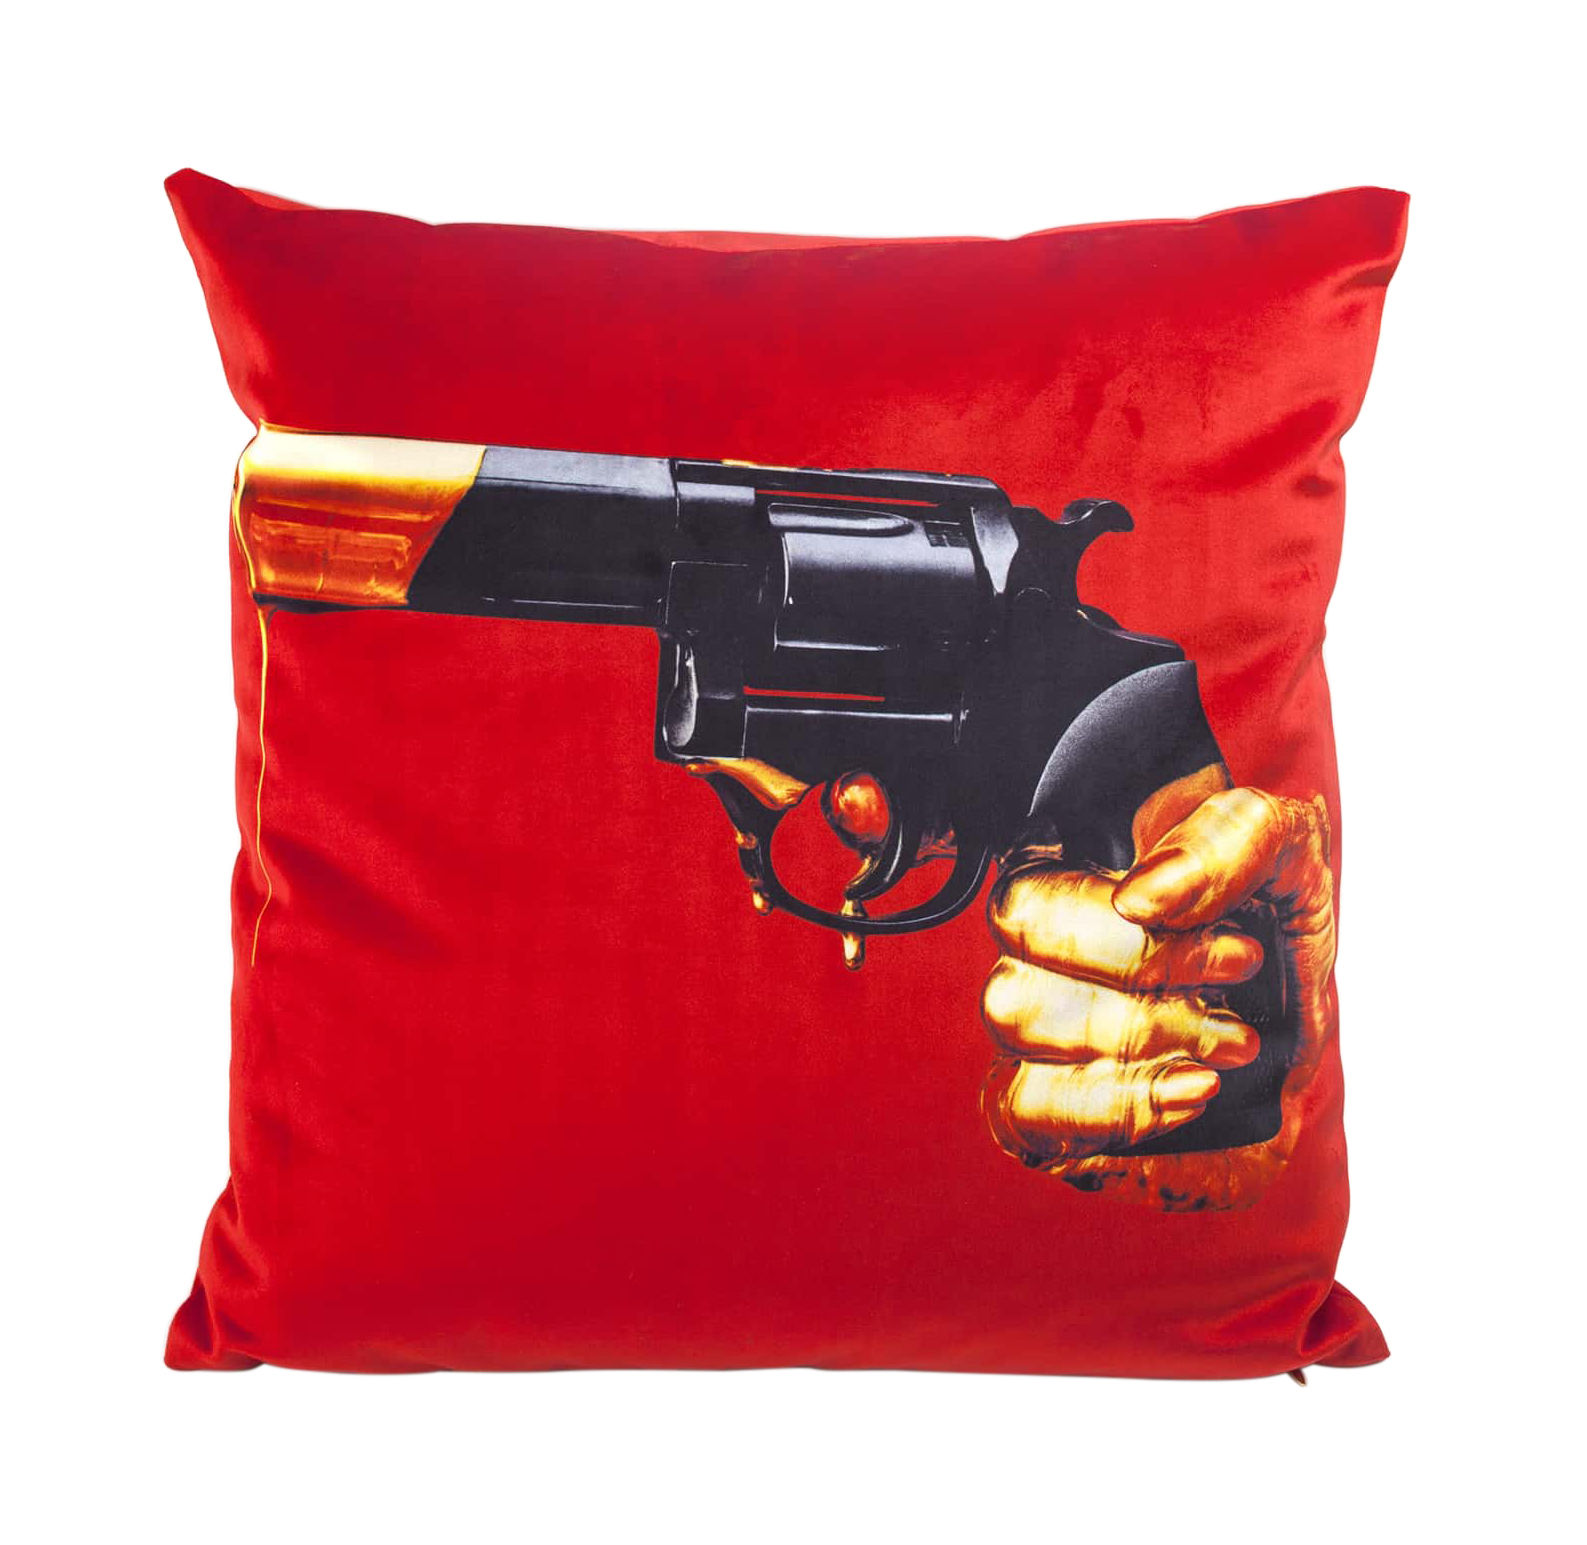 Decoration - Cushions & Poufs - Toiletpaper Cushion - / Revolver - 50 x 50 cm by Seletti - Revolver / Rouge - Feathers, Polyester fabric